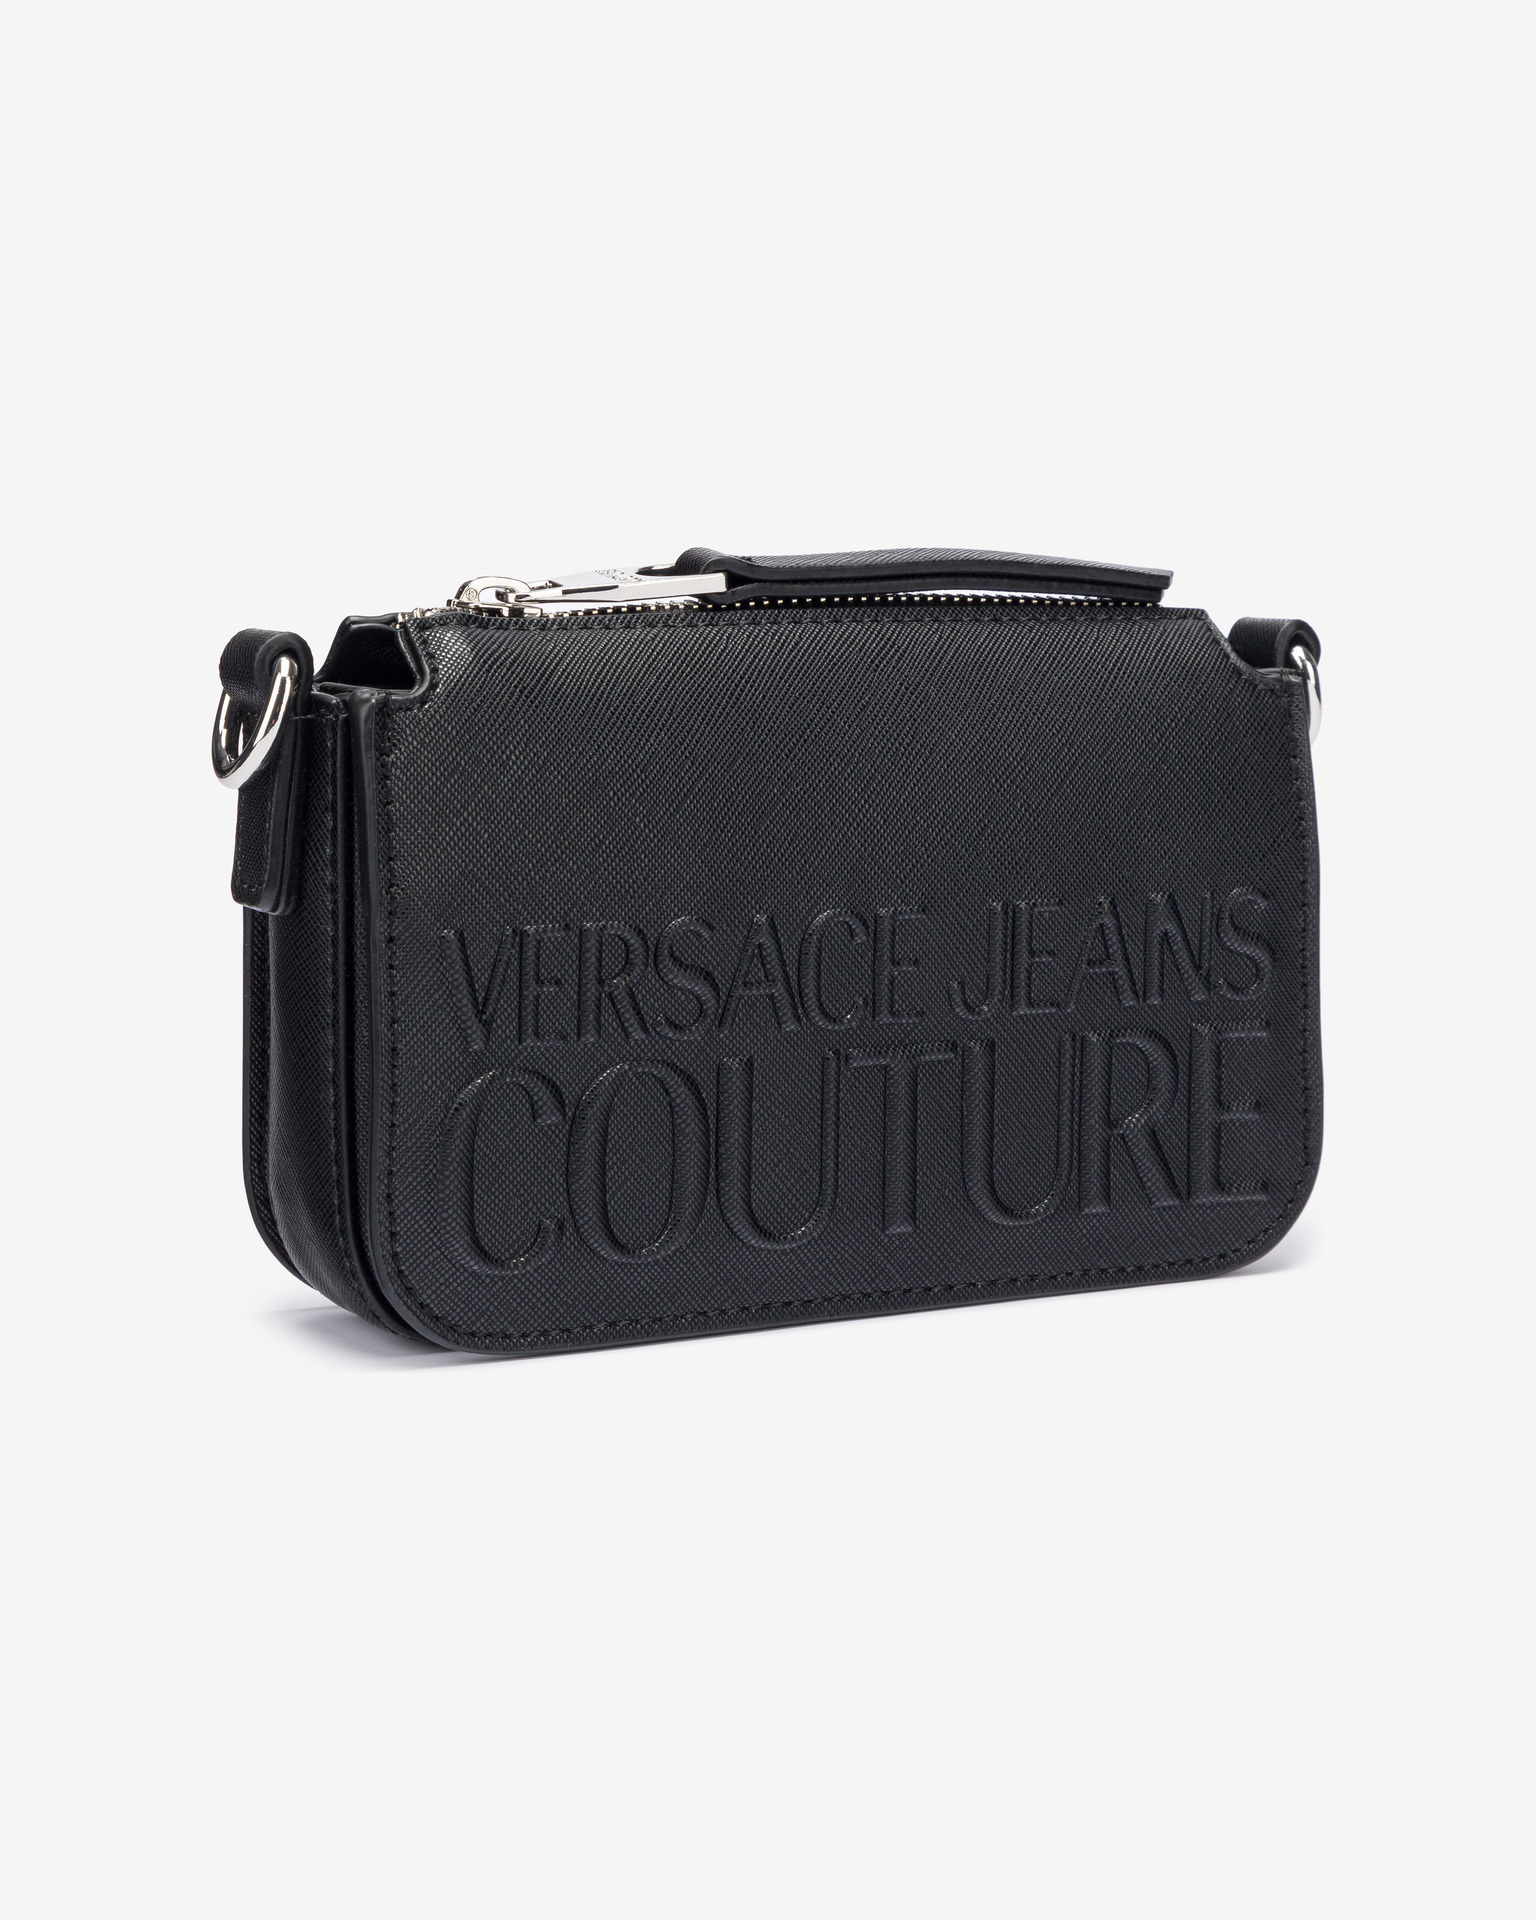 Versace Jeans Couture crna crossbody torba